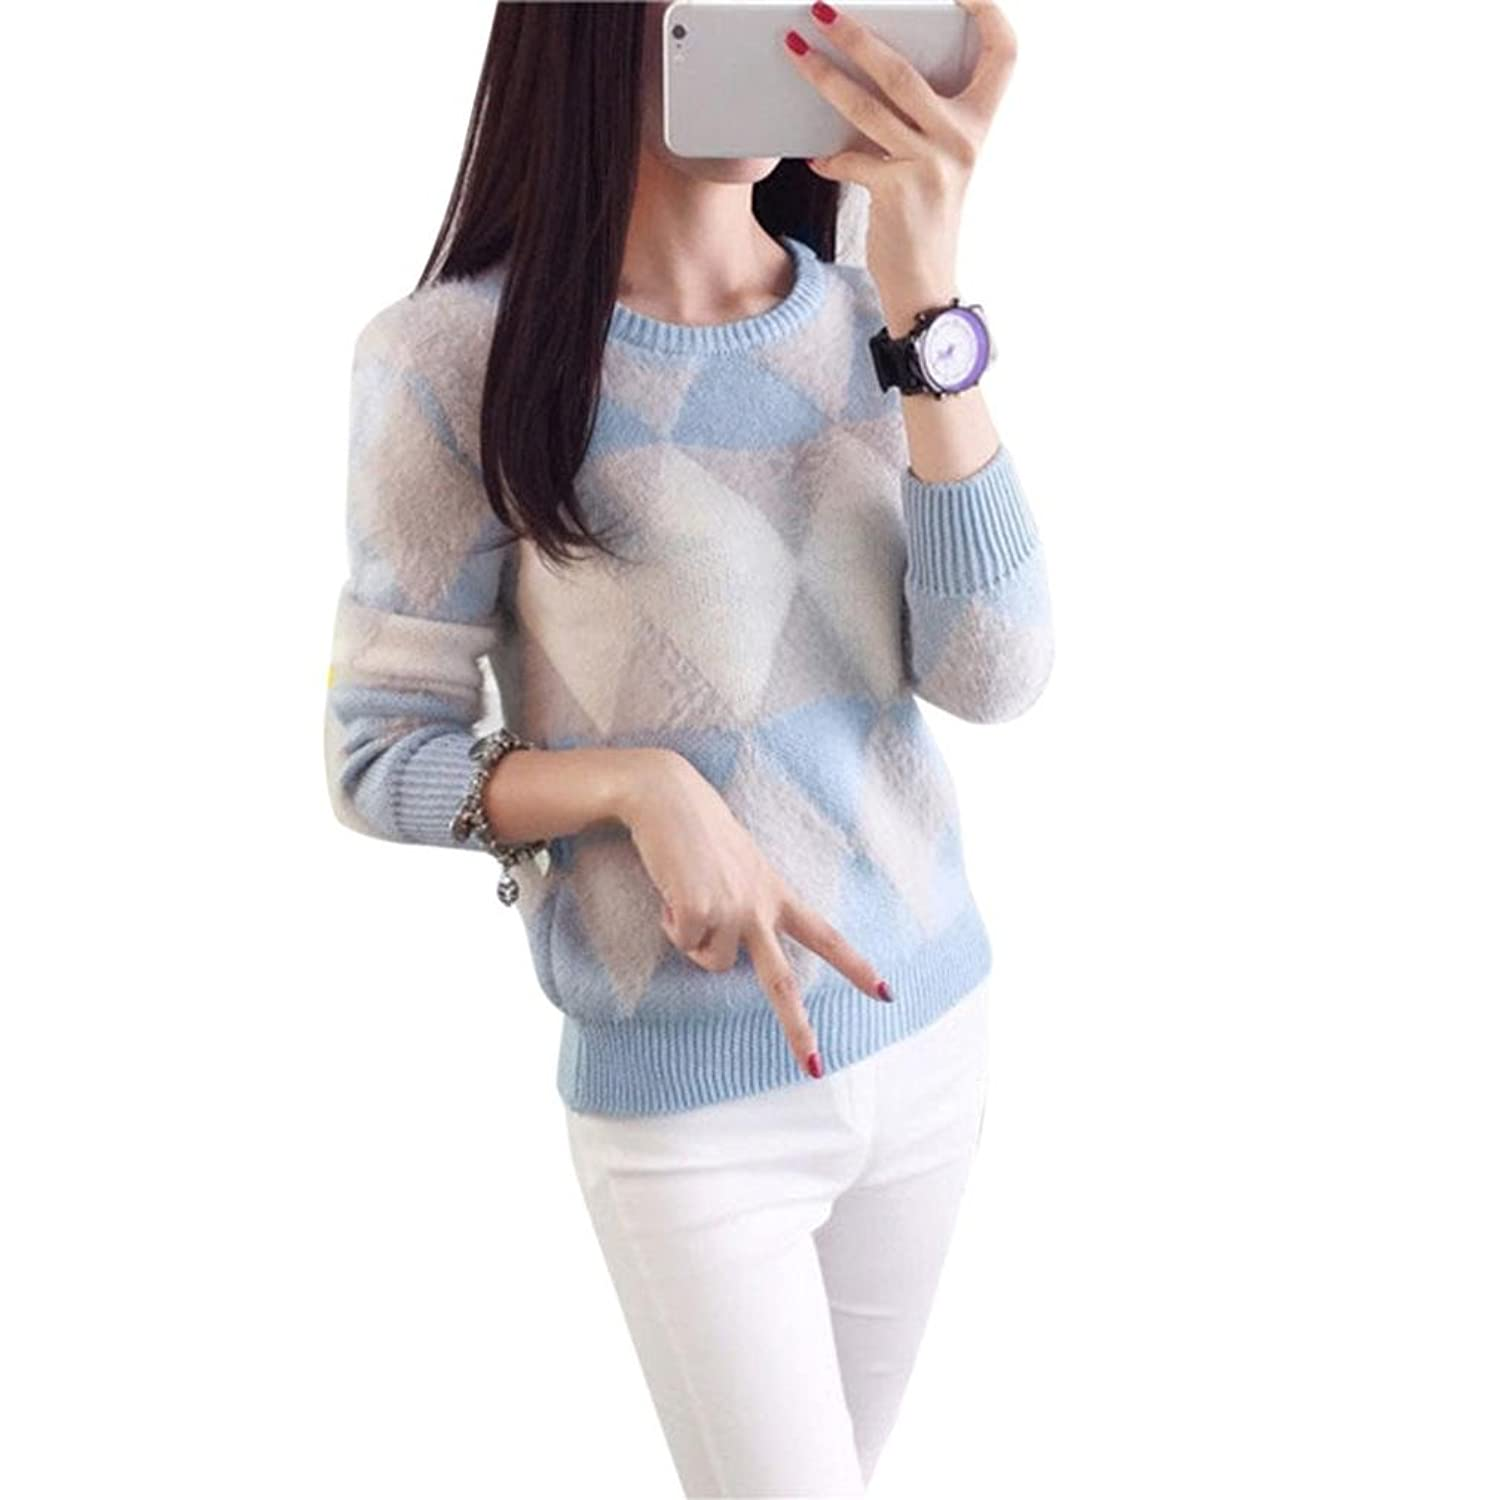 Inkach Woman Fashion Pullover Sweater Autumn Winter O-neck Long Leeve Sweater Blouse